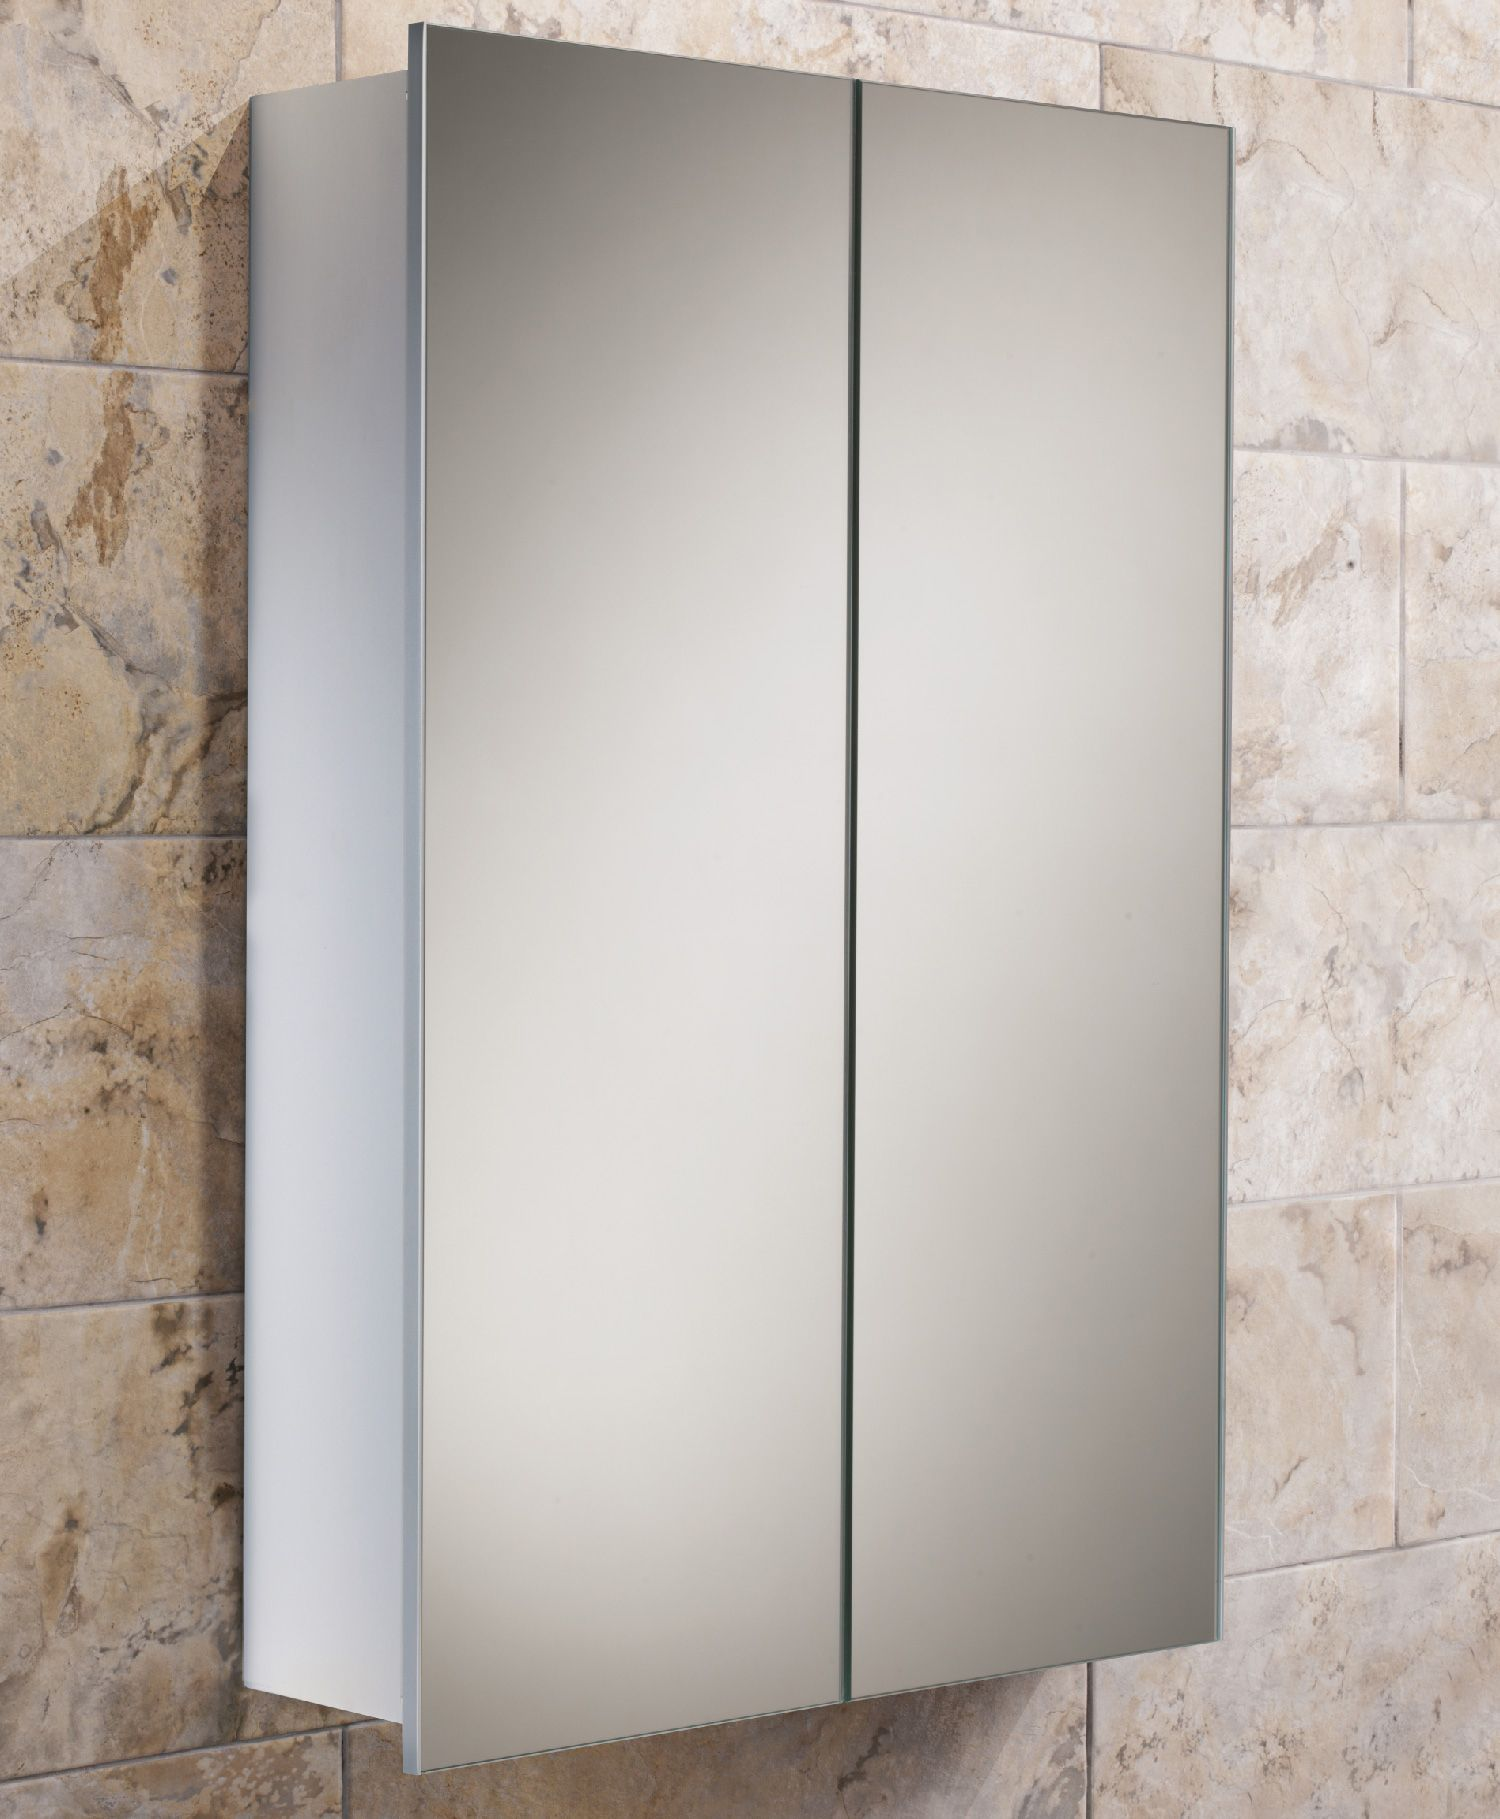 Hib Jupiter Double Door Aluminium Bathroom Cabinet X